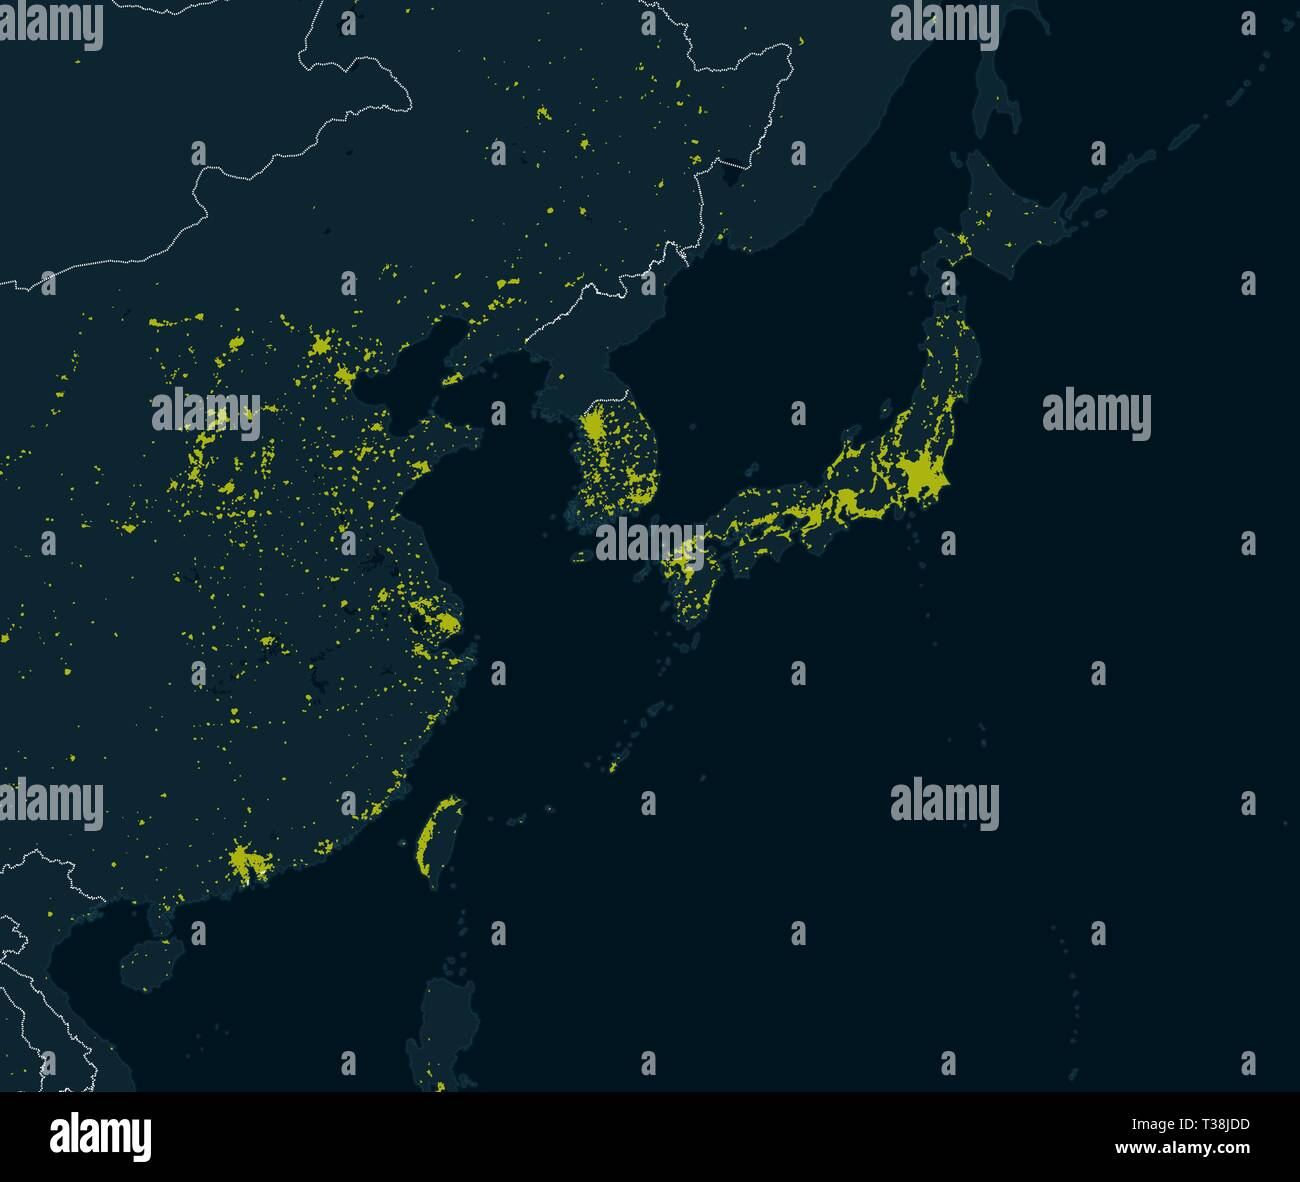 Image of: World Map Planisphere With Prominent Urban Areas Night View Of The Earth Asia Satellite View Of The Cities Illuminated In The Night East Asia Stock Vector Image Art Alamy